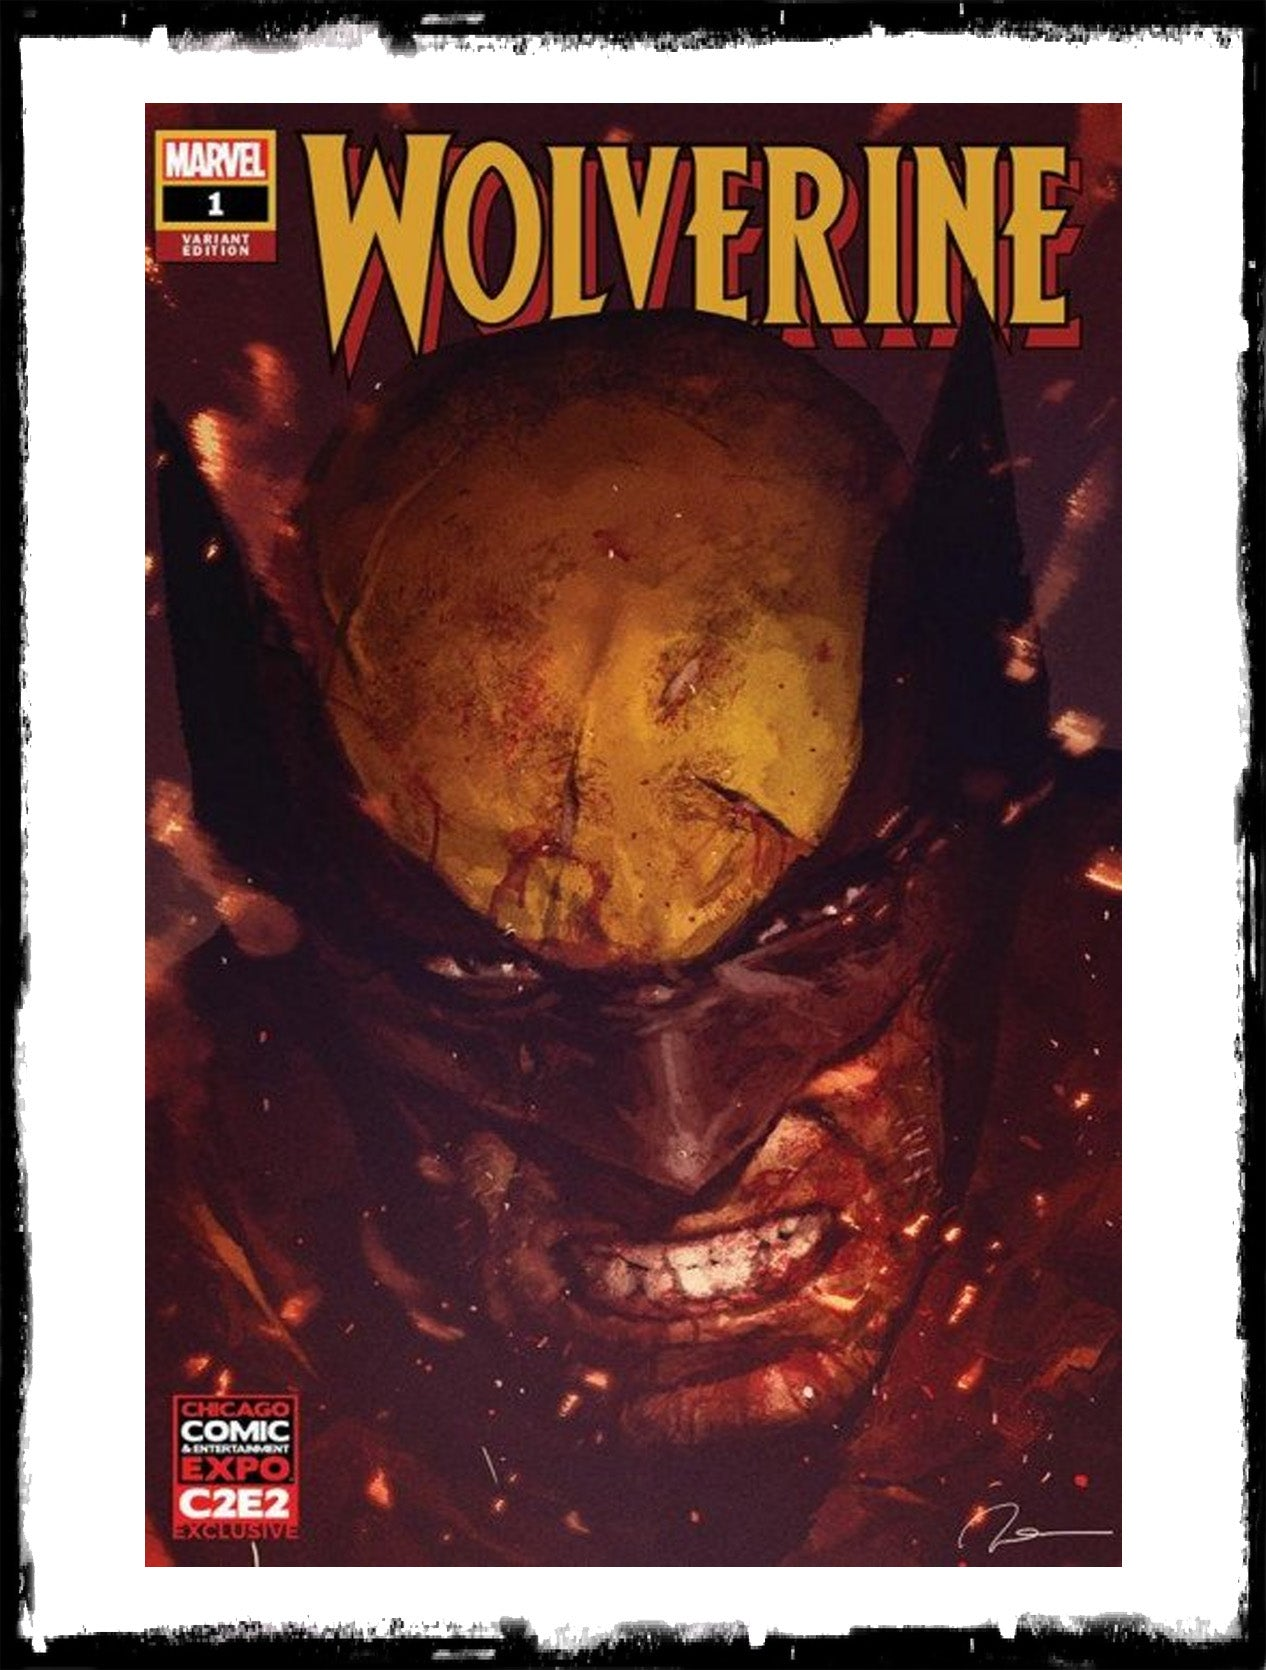 WOLVERINE - #1 C2E2 GERALD PAREL EXCLUSIVE (2020 - NM)